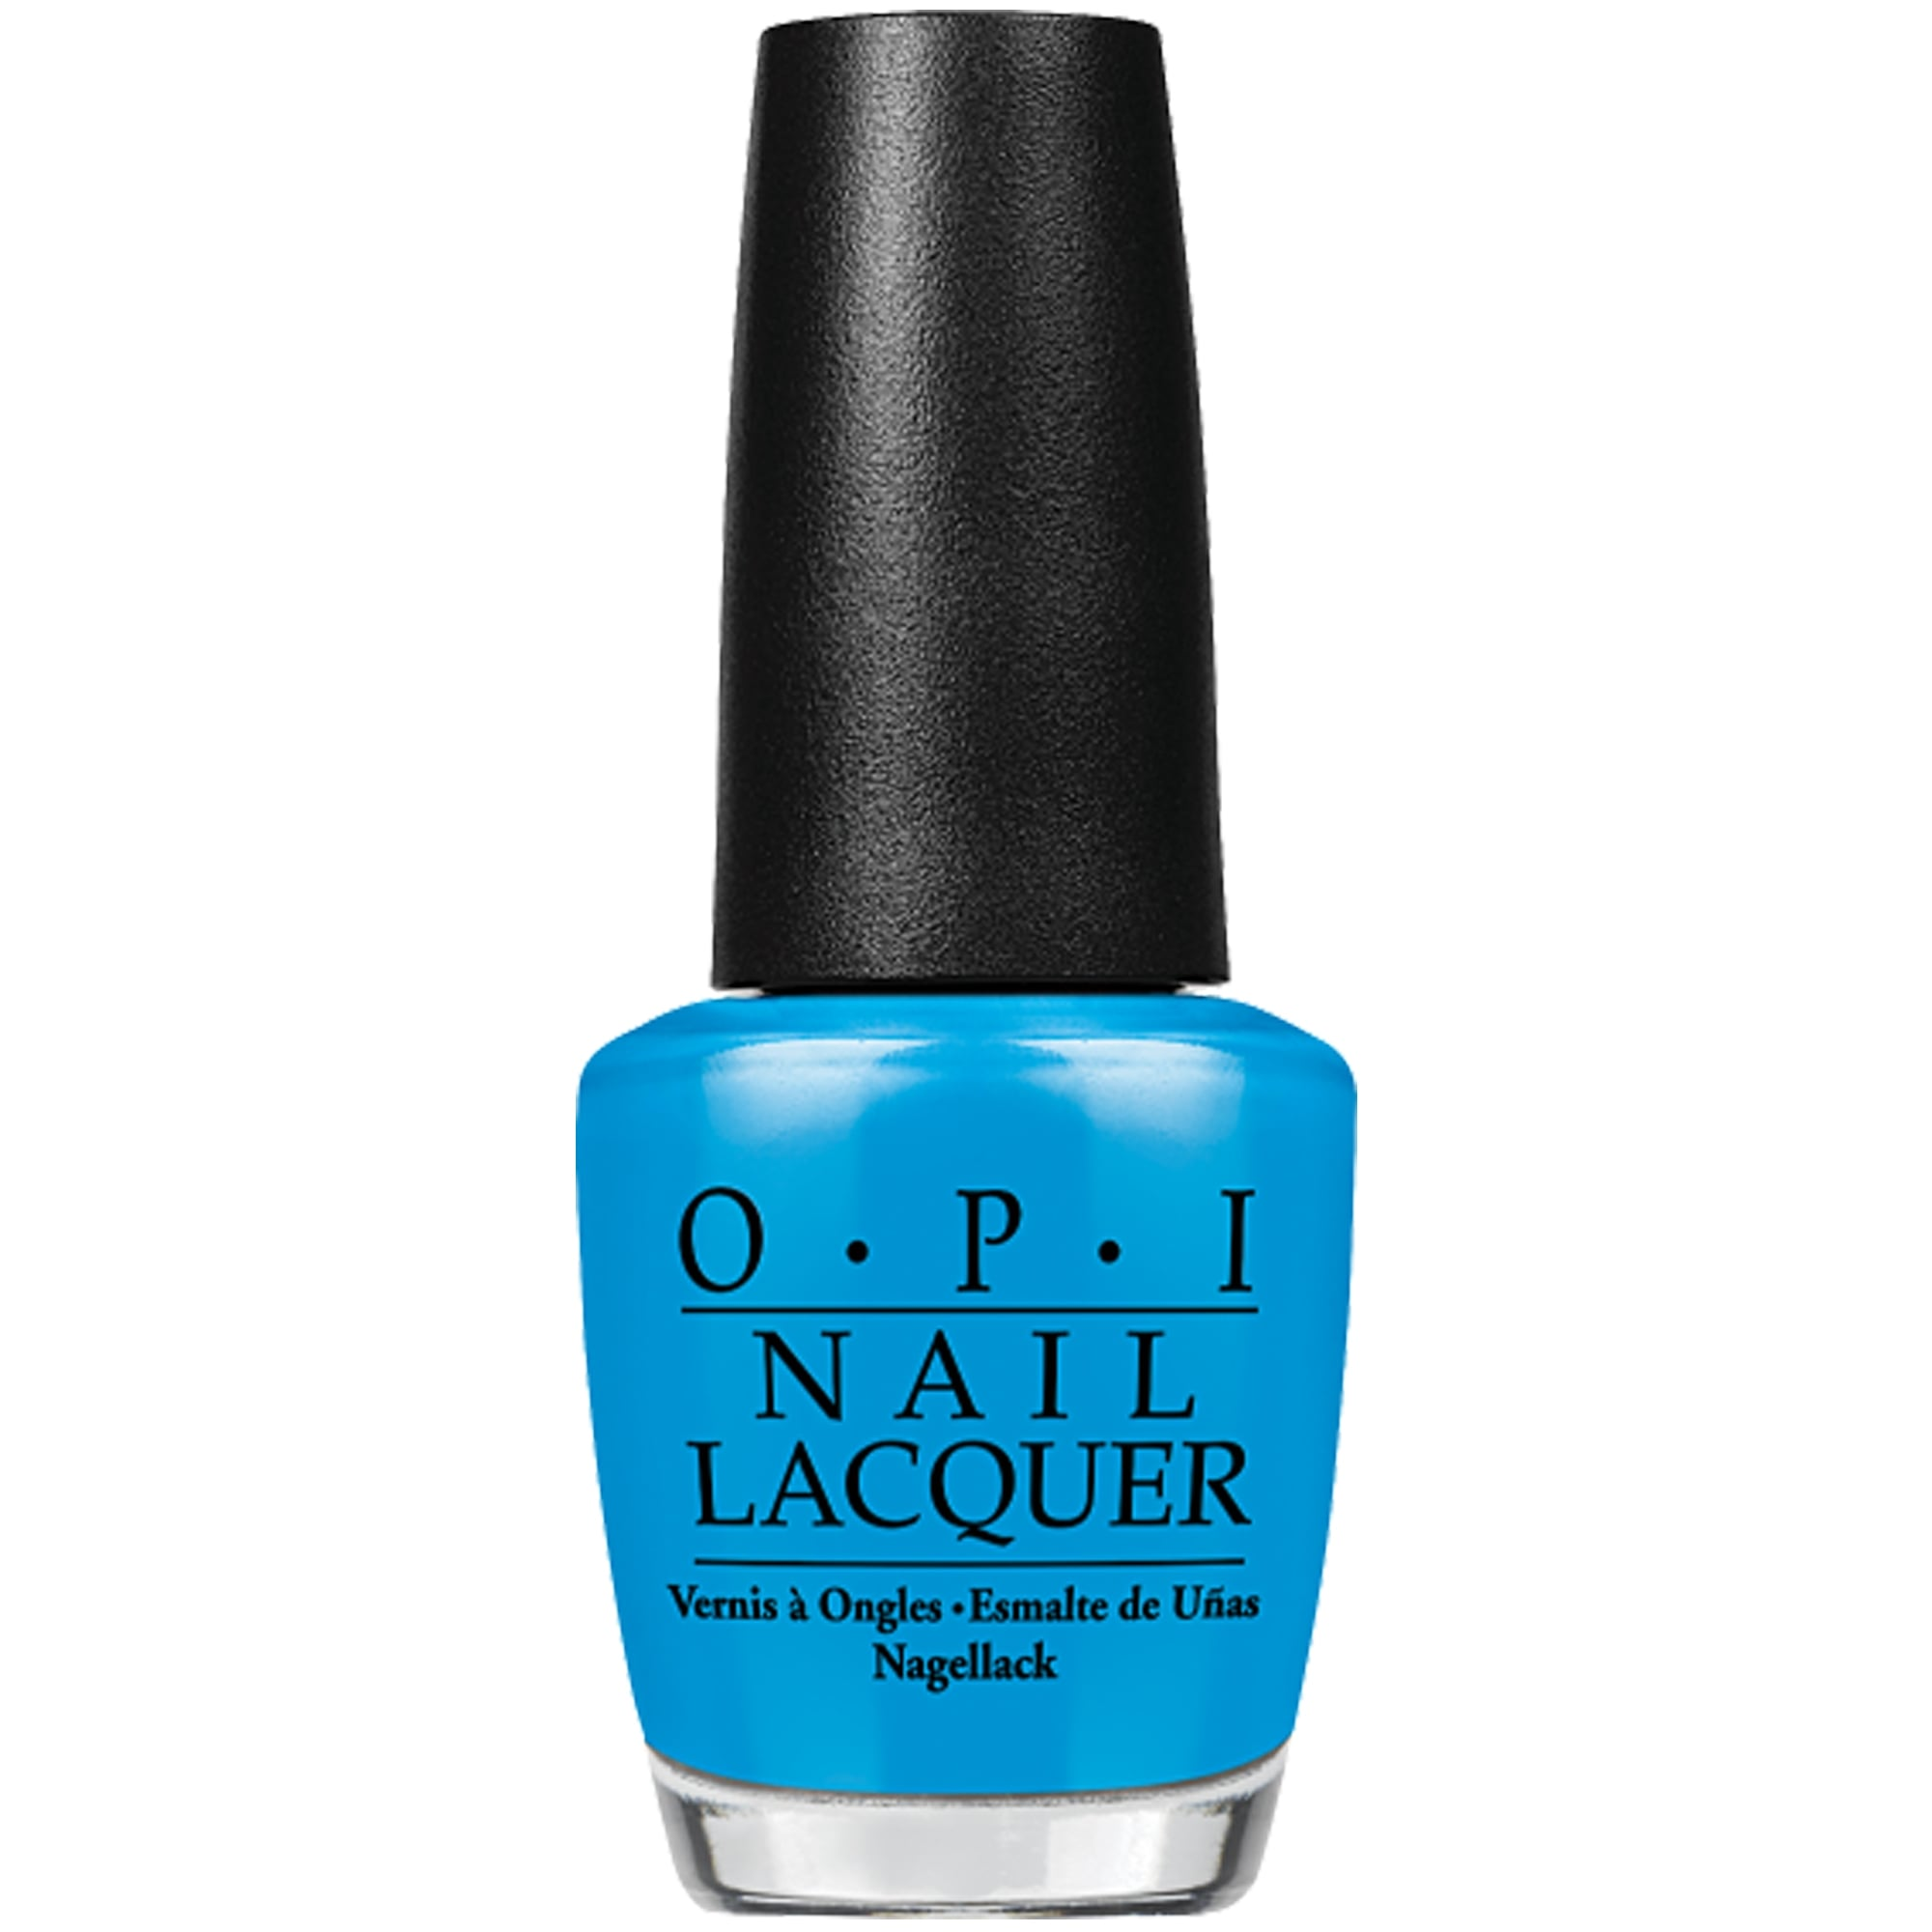 OPI Nail Lacquer στην απόχρωση No Room For The Blues